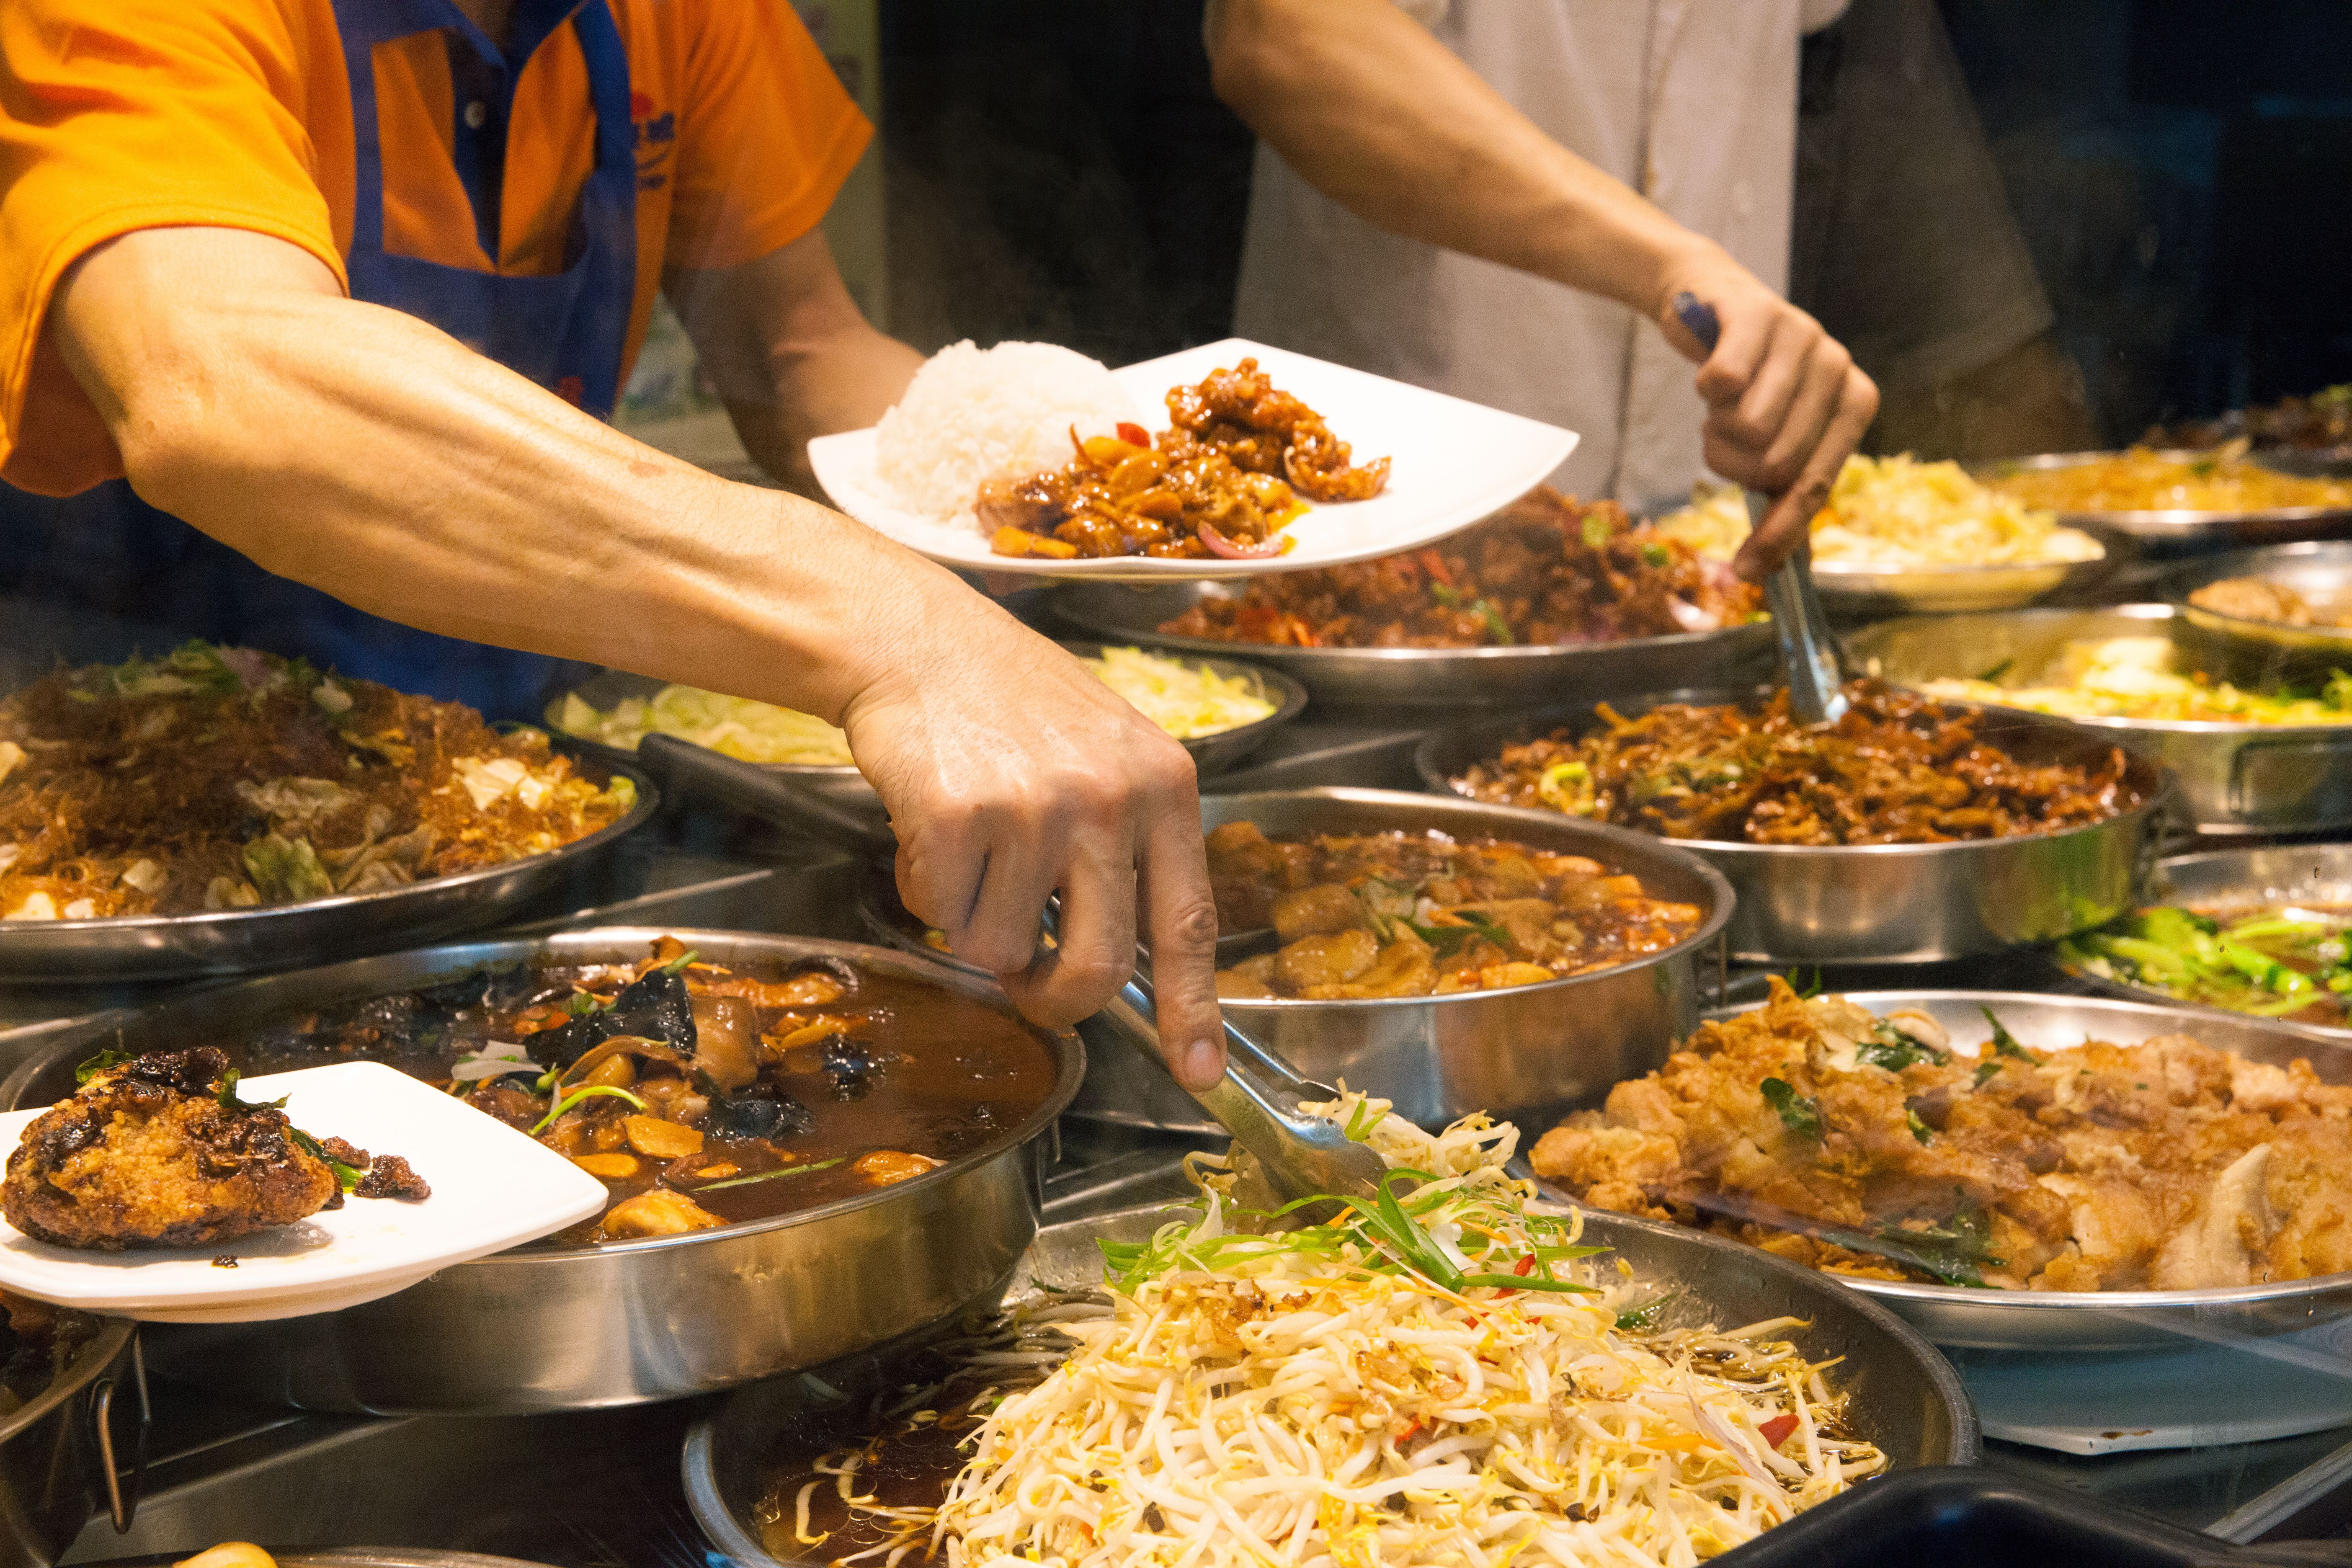 A hawker food cart in Singapore